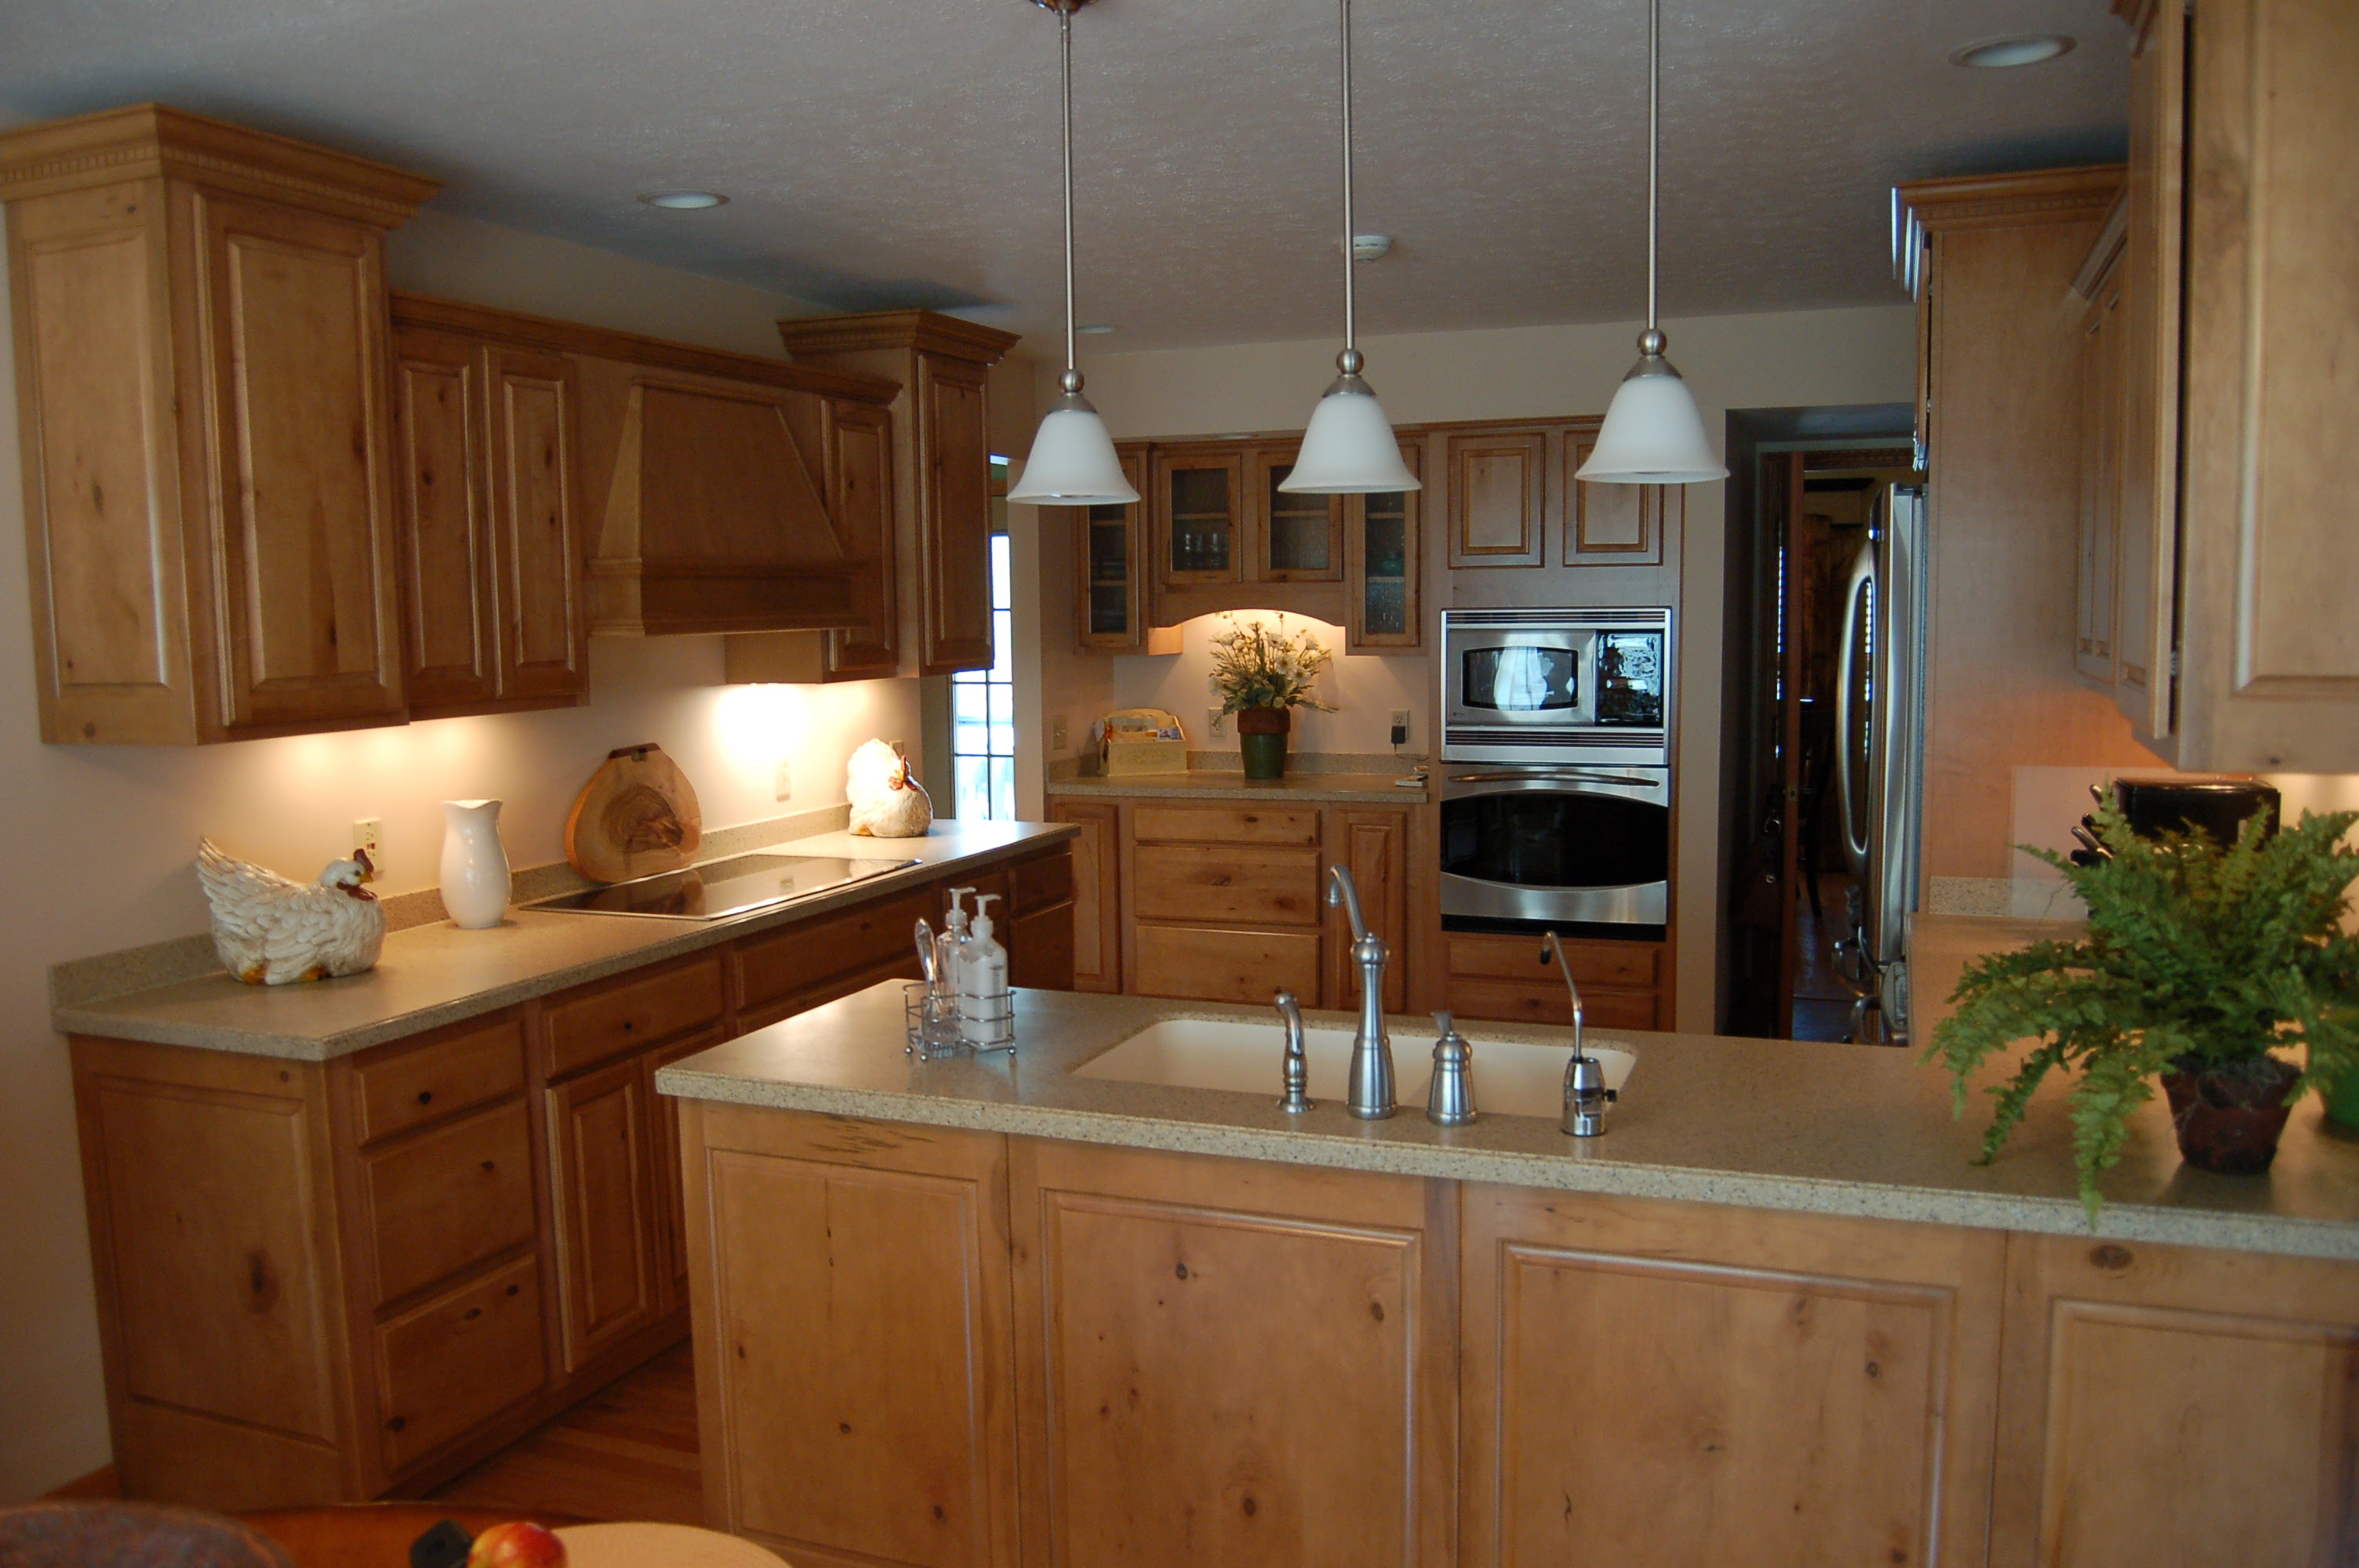 St. Louis Kitchen and Bath Remodeling >> Call Barker Son